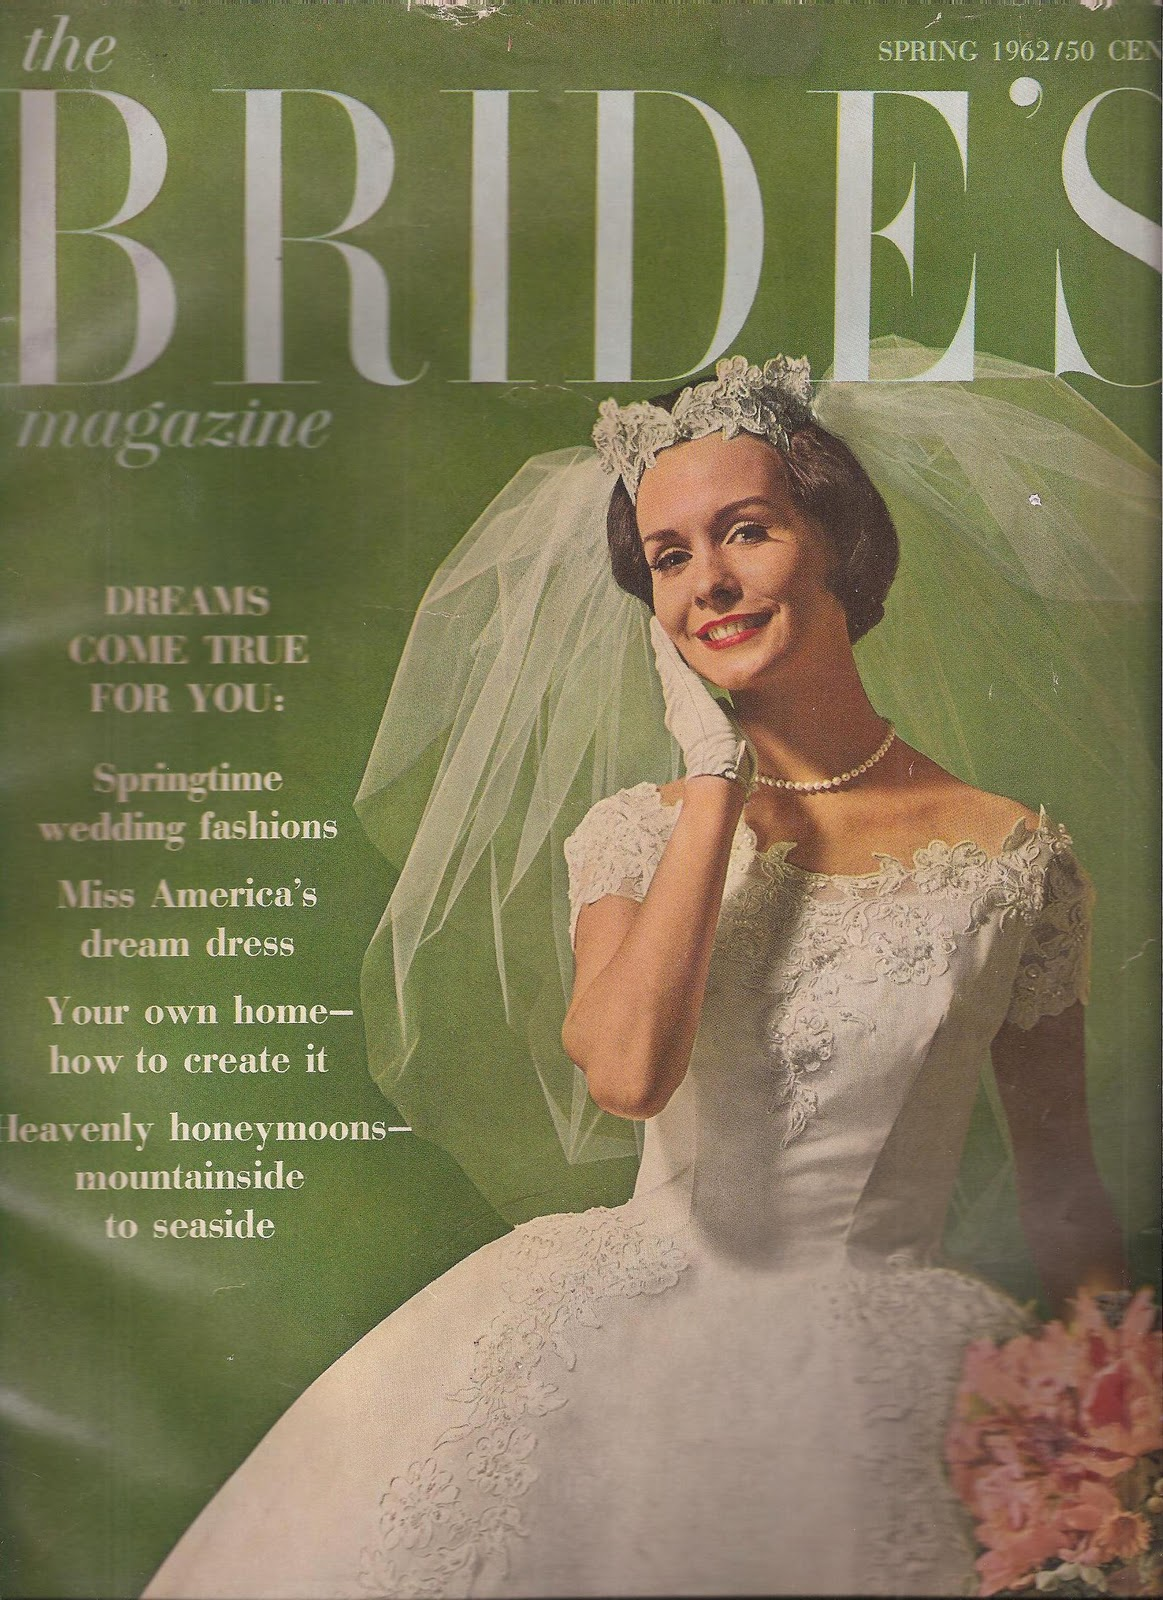 A Few Months Ago I Bought Vintage Bridal Magazines They Are So Interesting The Dresses Colors Articles Have Brides Magazine From